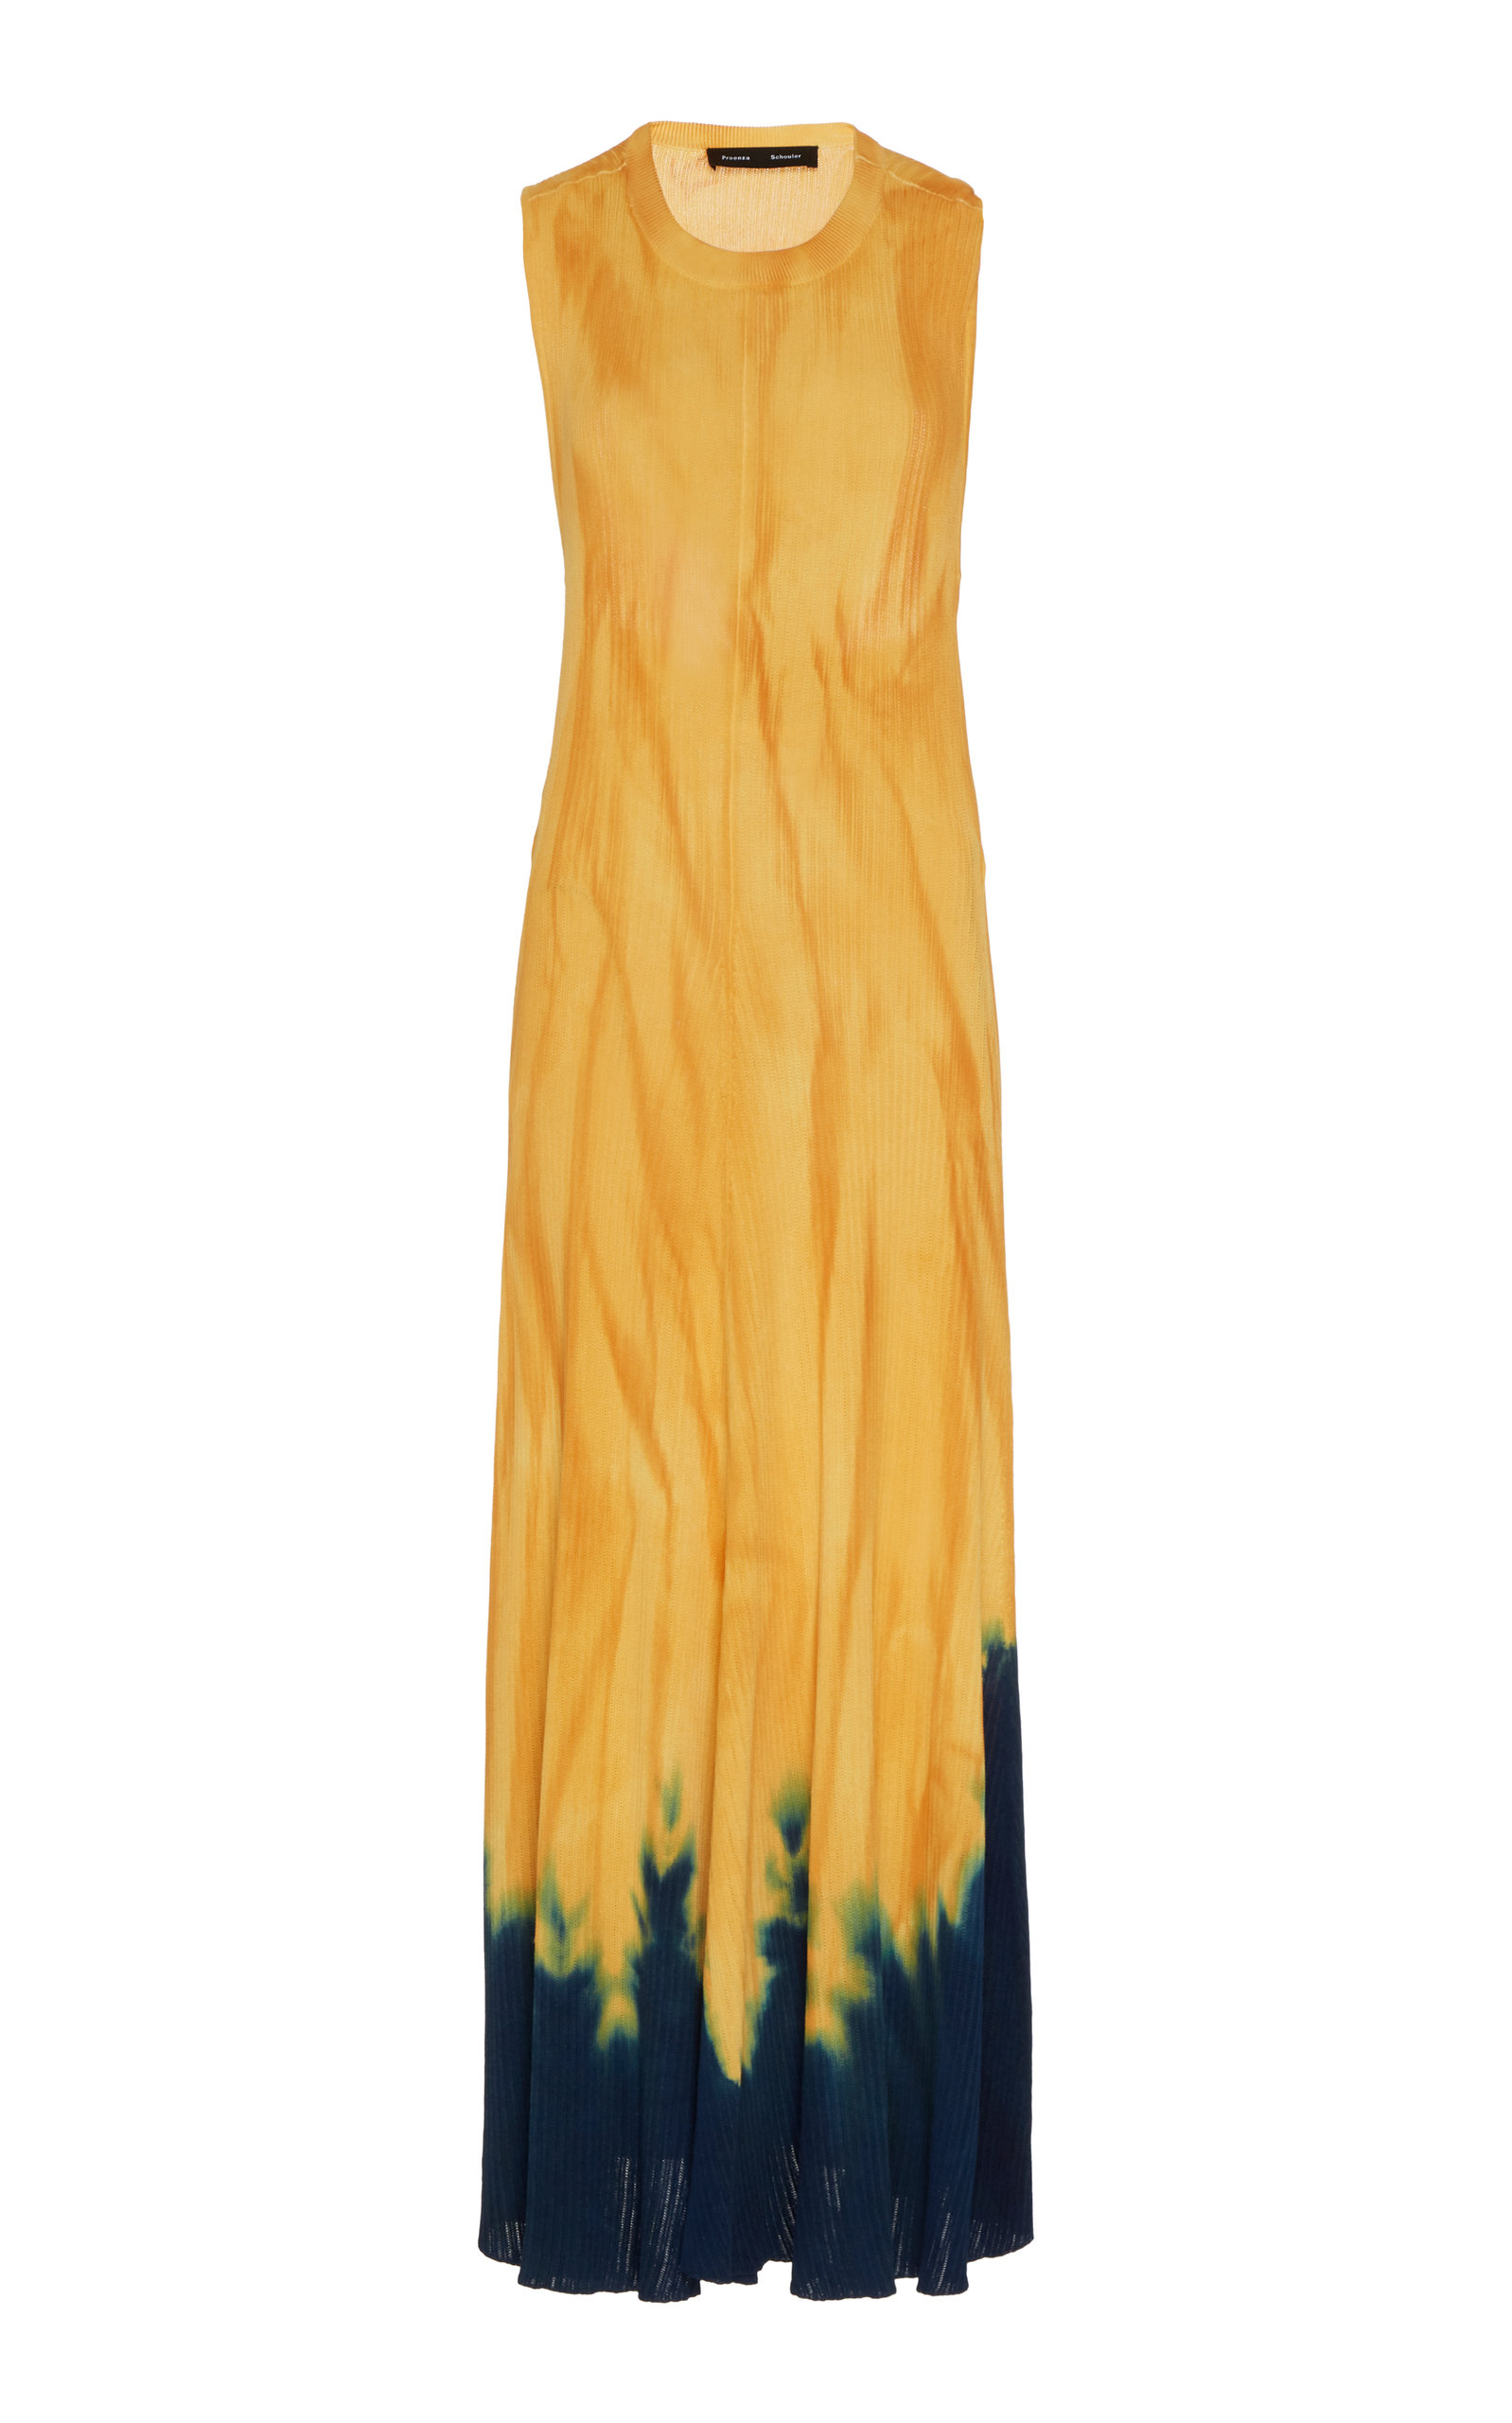 Buy Proenza Schouler Tie-Dyed Sleeveless Knit Midi Dress online, shop Proenza Schouler at the best price